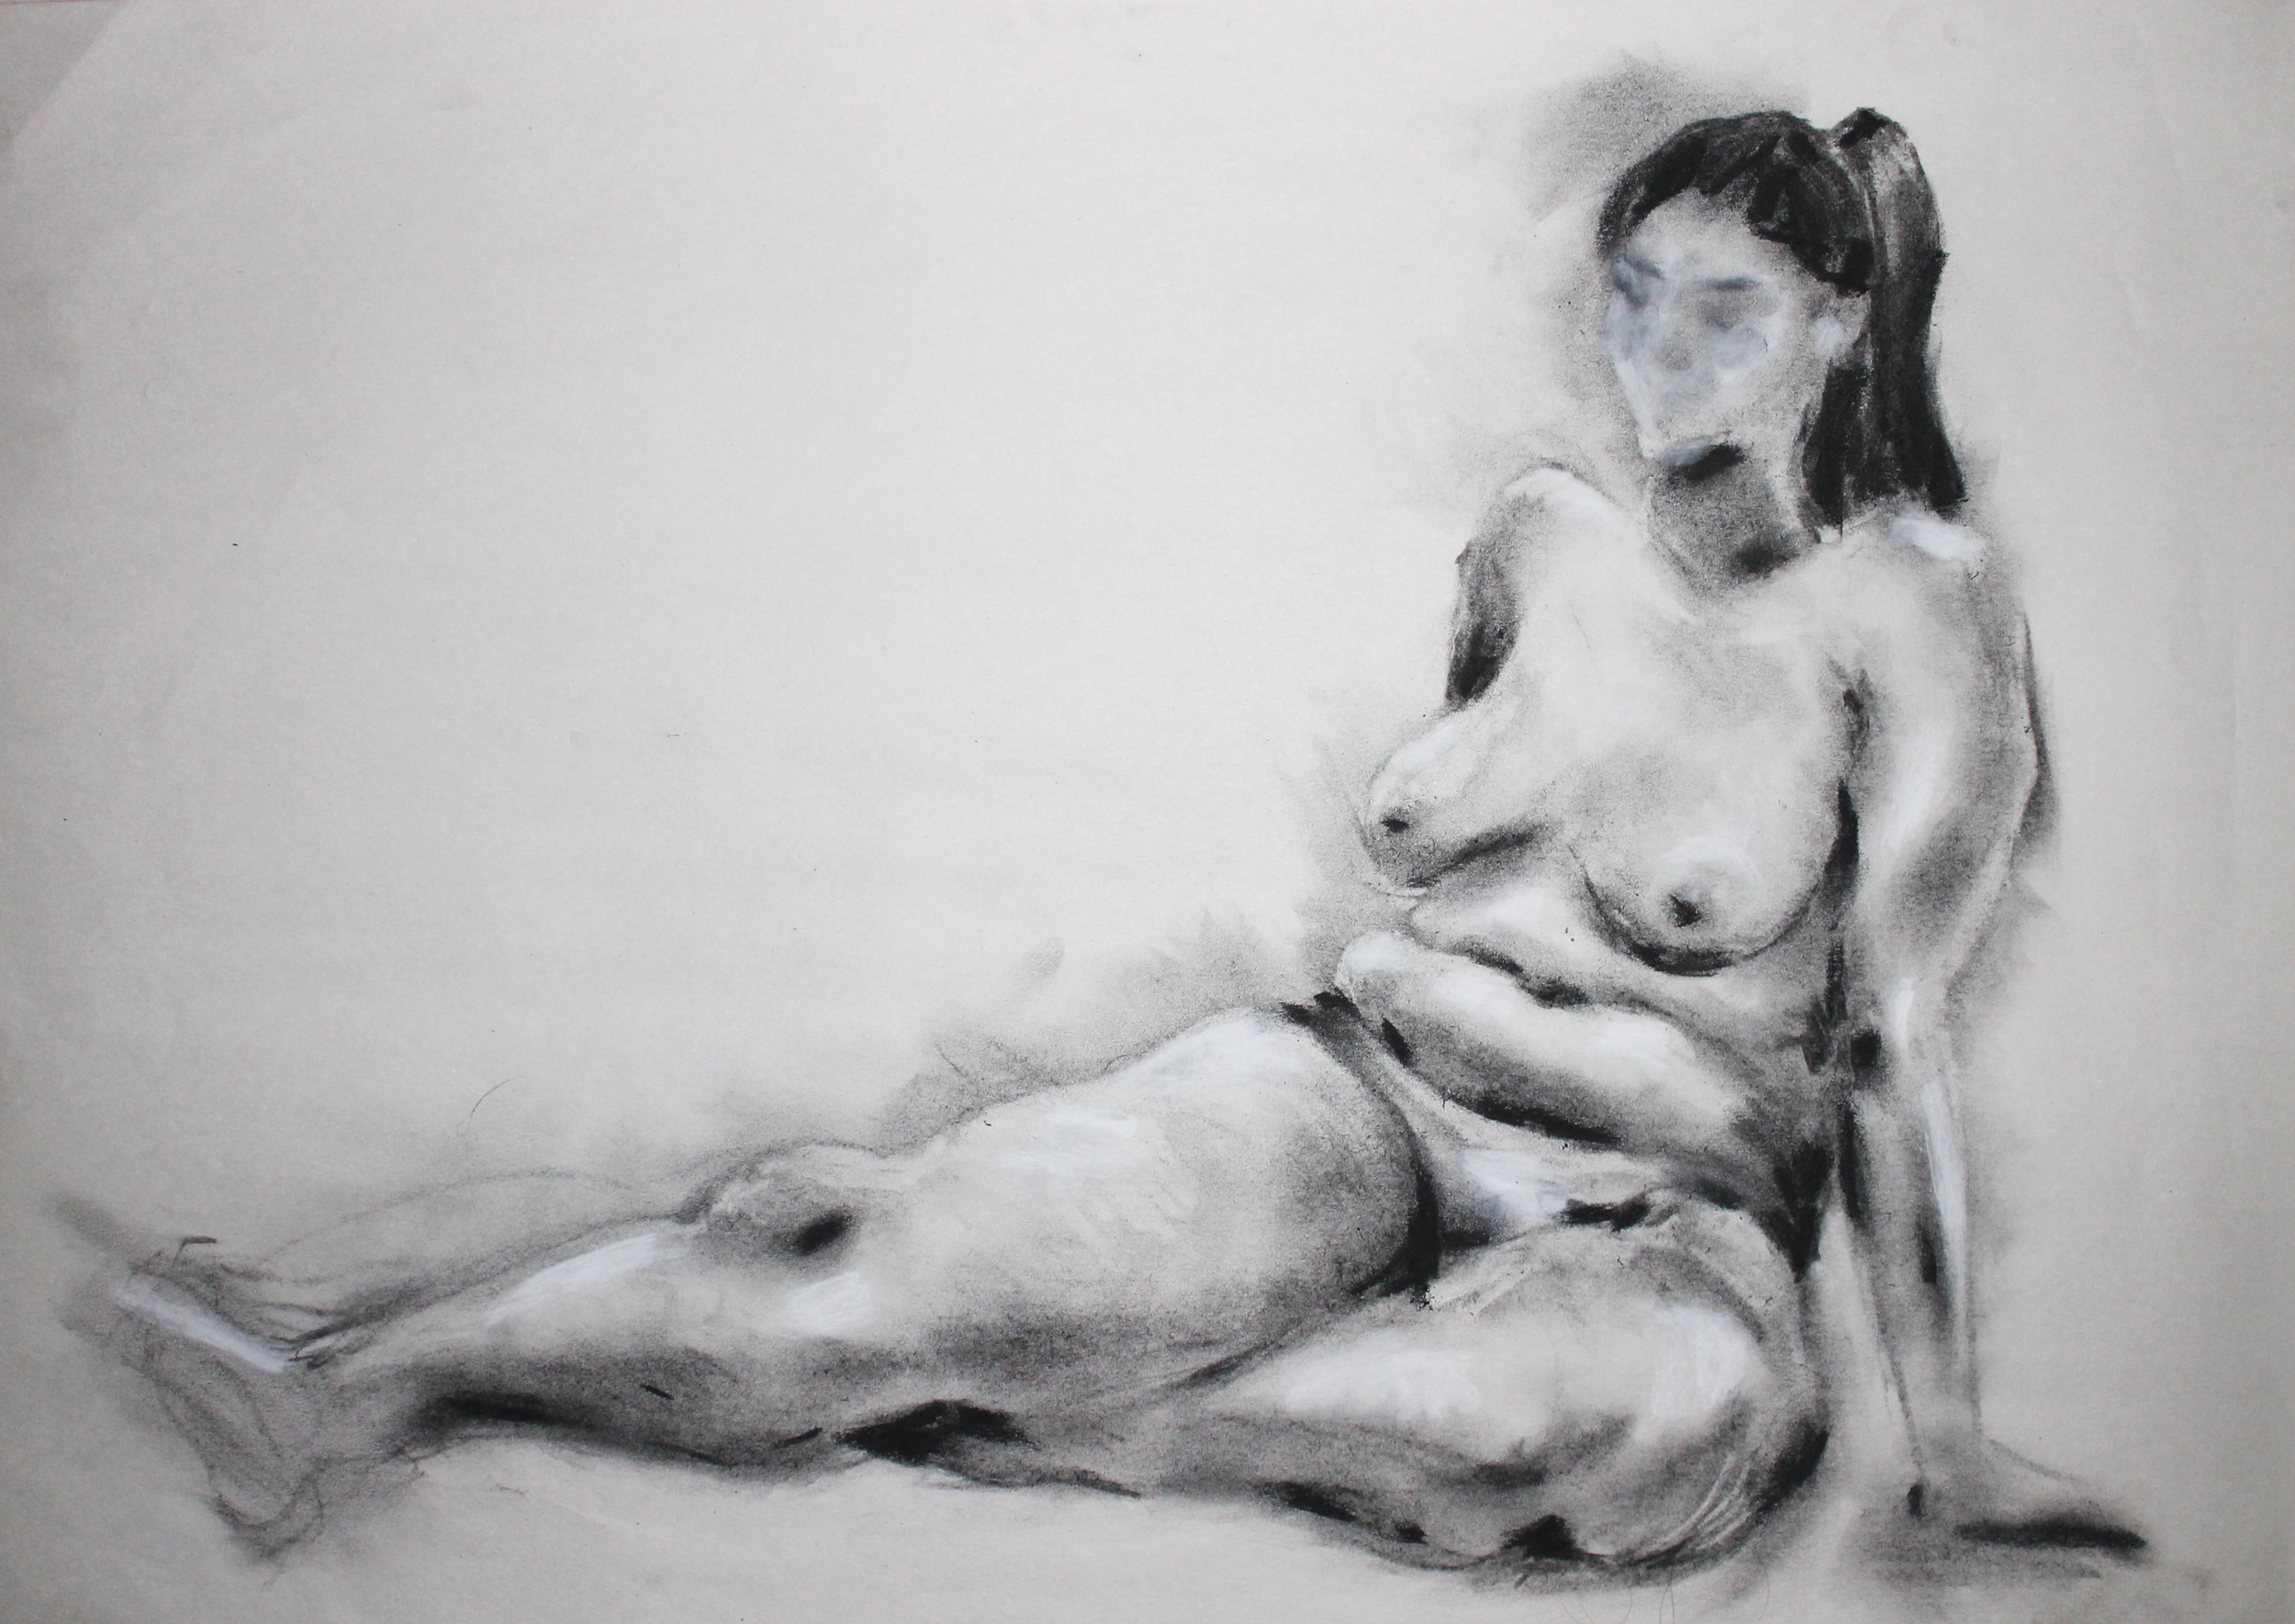 - vine charcoal, compressed charcoal,and conte crayon on newsprint,2017